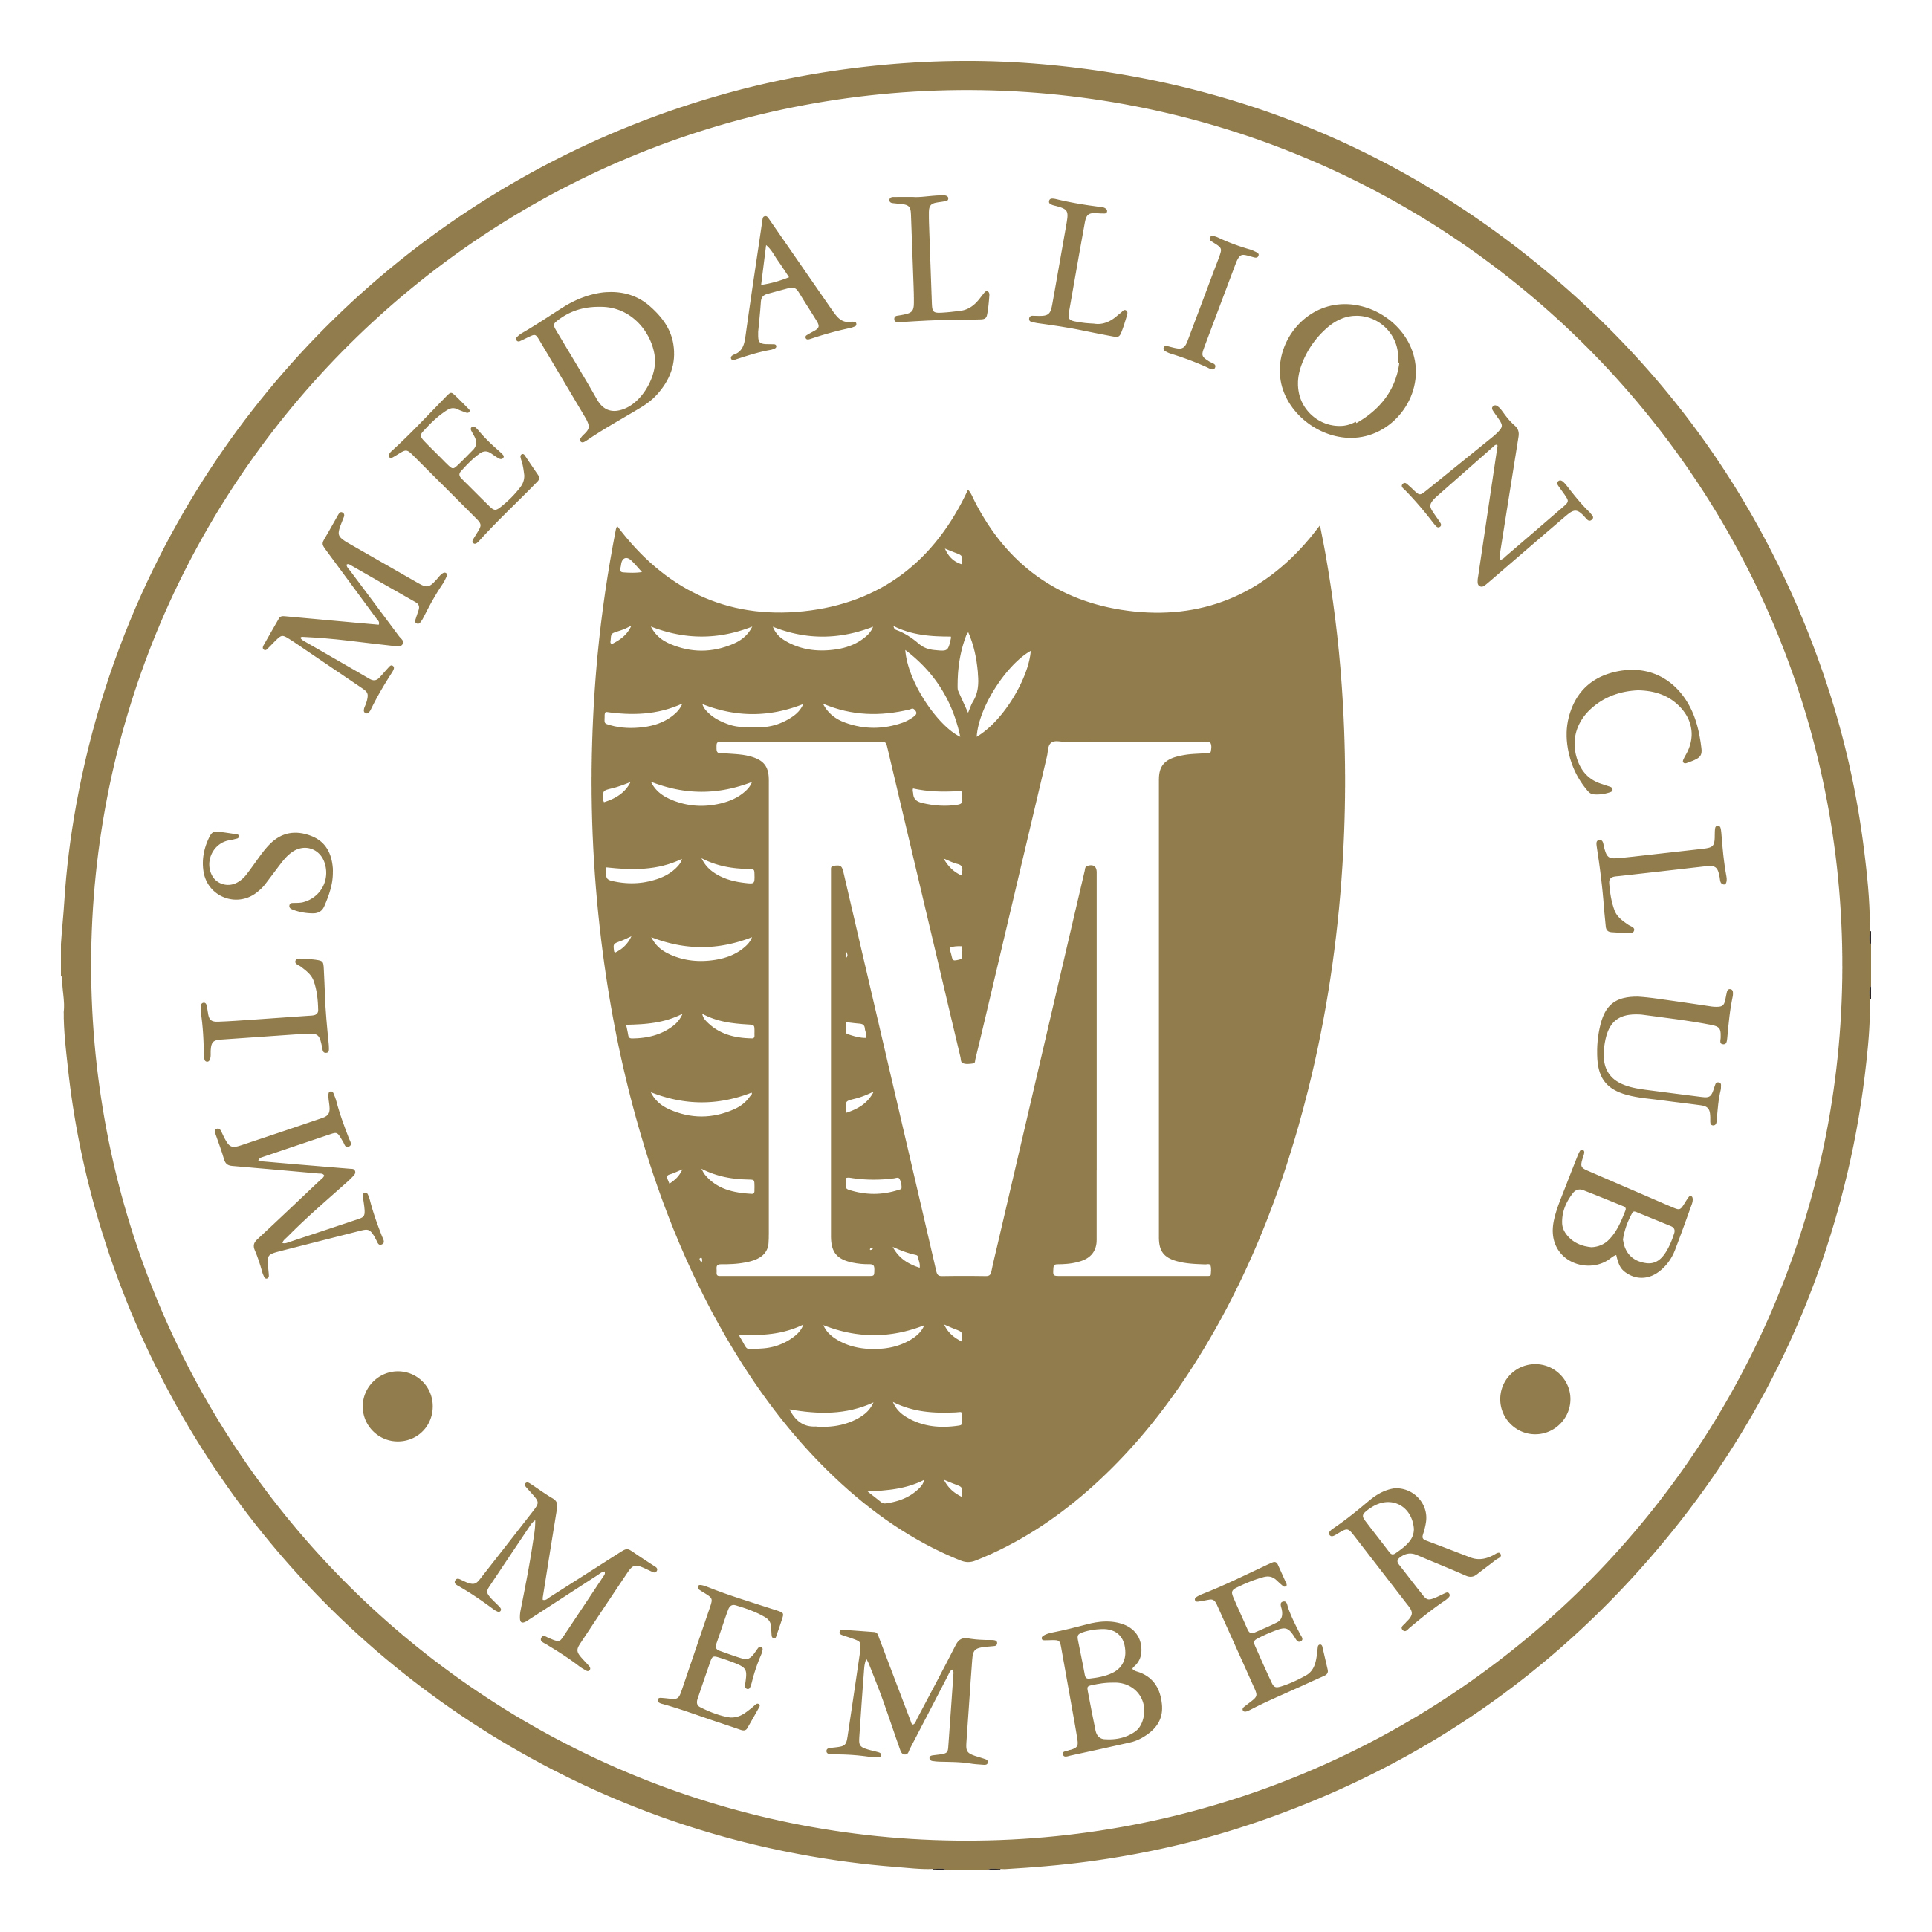 Gold Master Medallion Club (11 years) image